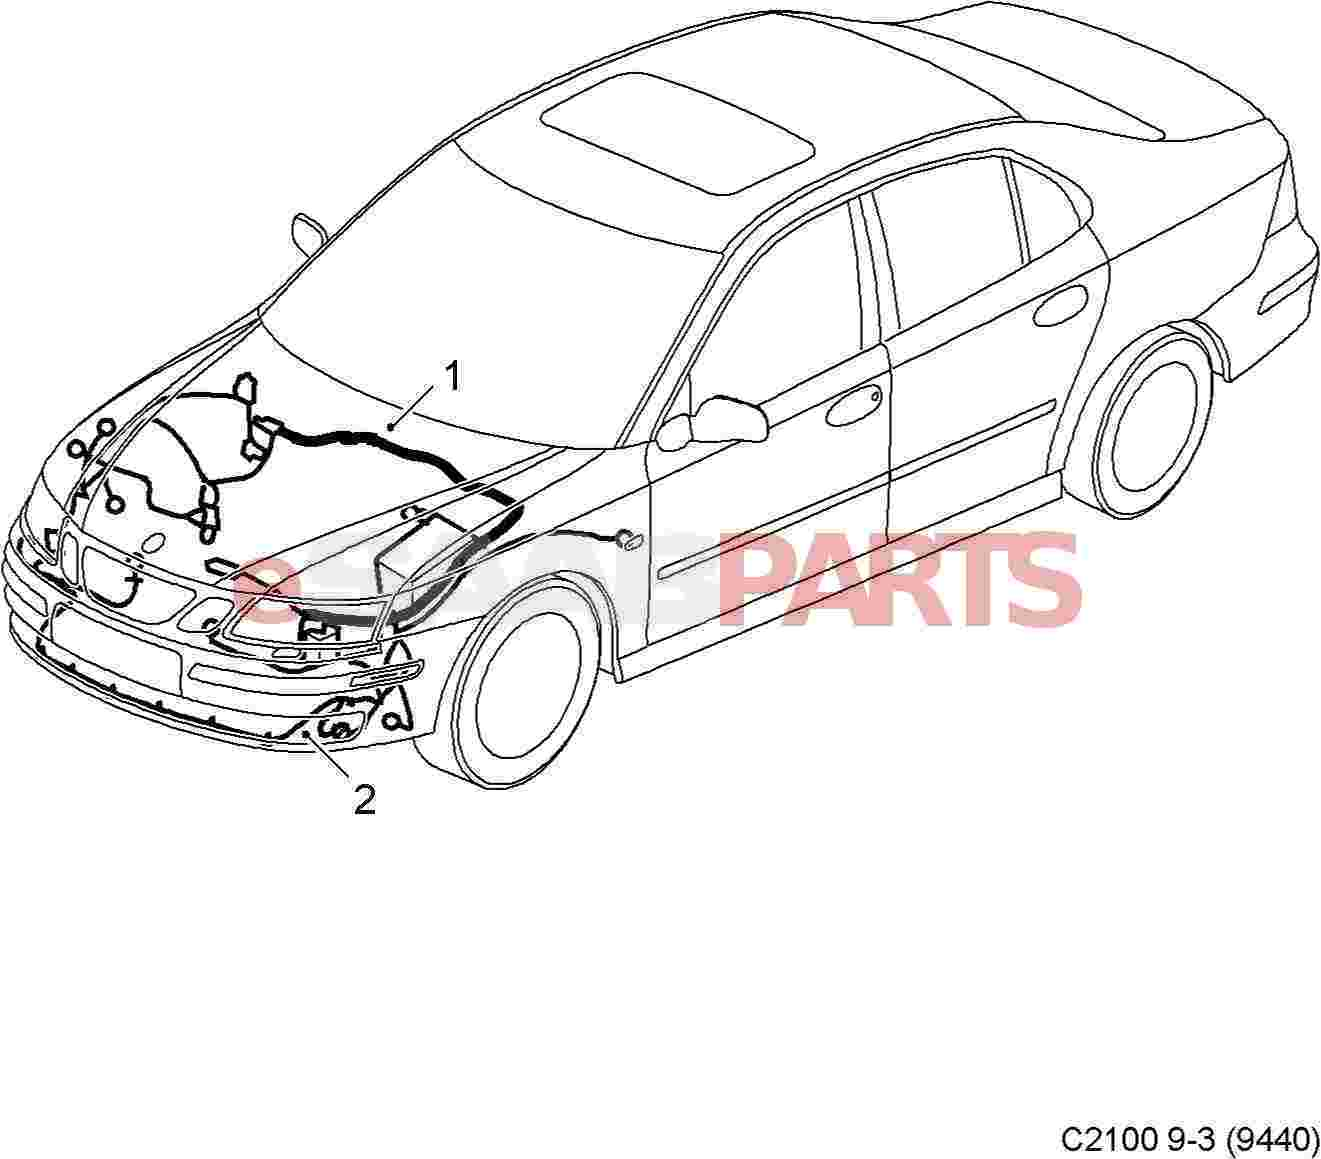 Saab Wiring Harness Diagrams Schema Auto Lighting Diagram Esaabparts Com 9 3 9440 U003e Electrical Parts